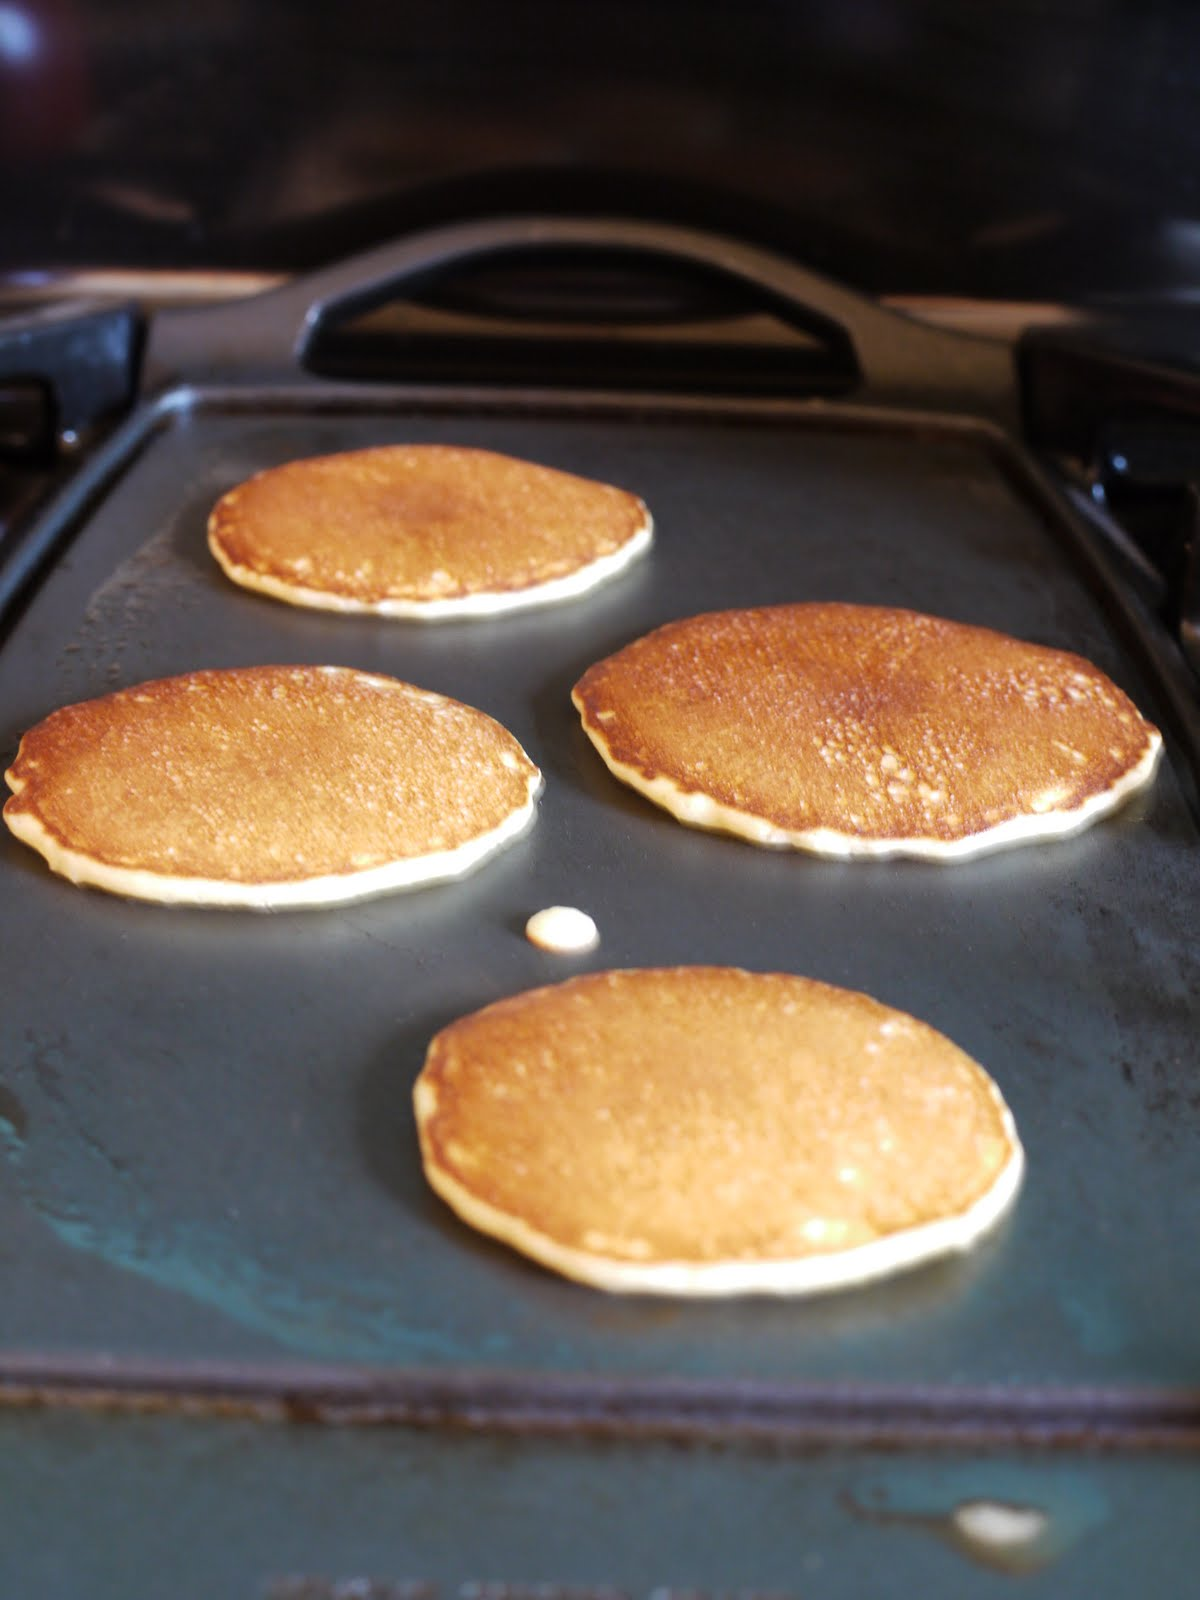 pancakes essay Buttermilk pancakes, blueberry pancakes, banana pancakes, oatmeal or whole wheat get recipes for light and fluffy pancakes, including vegan and keto options.